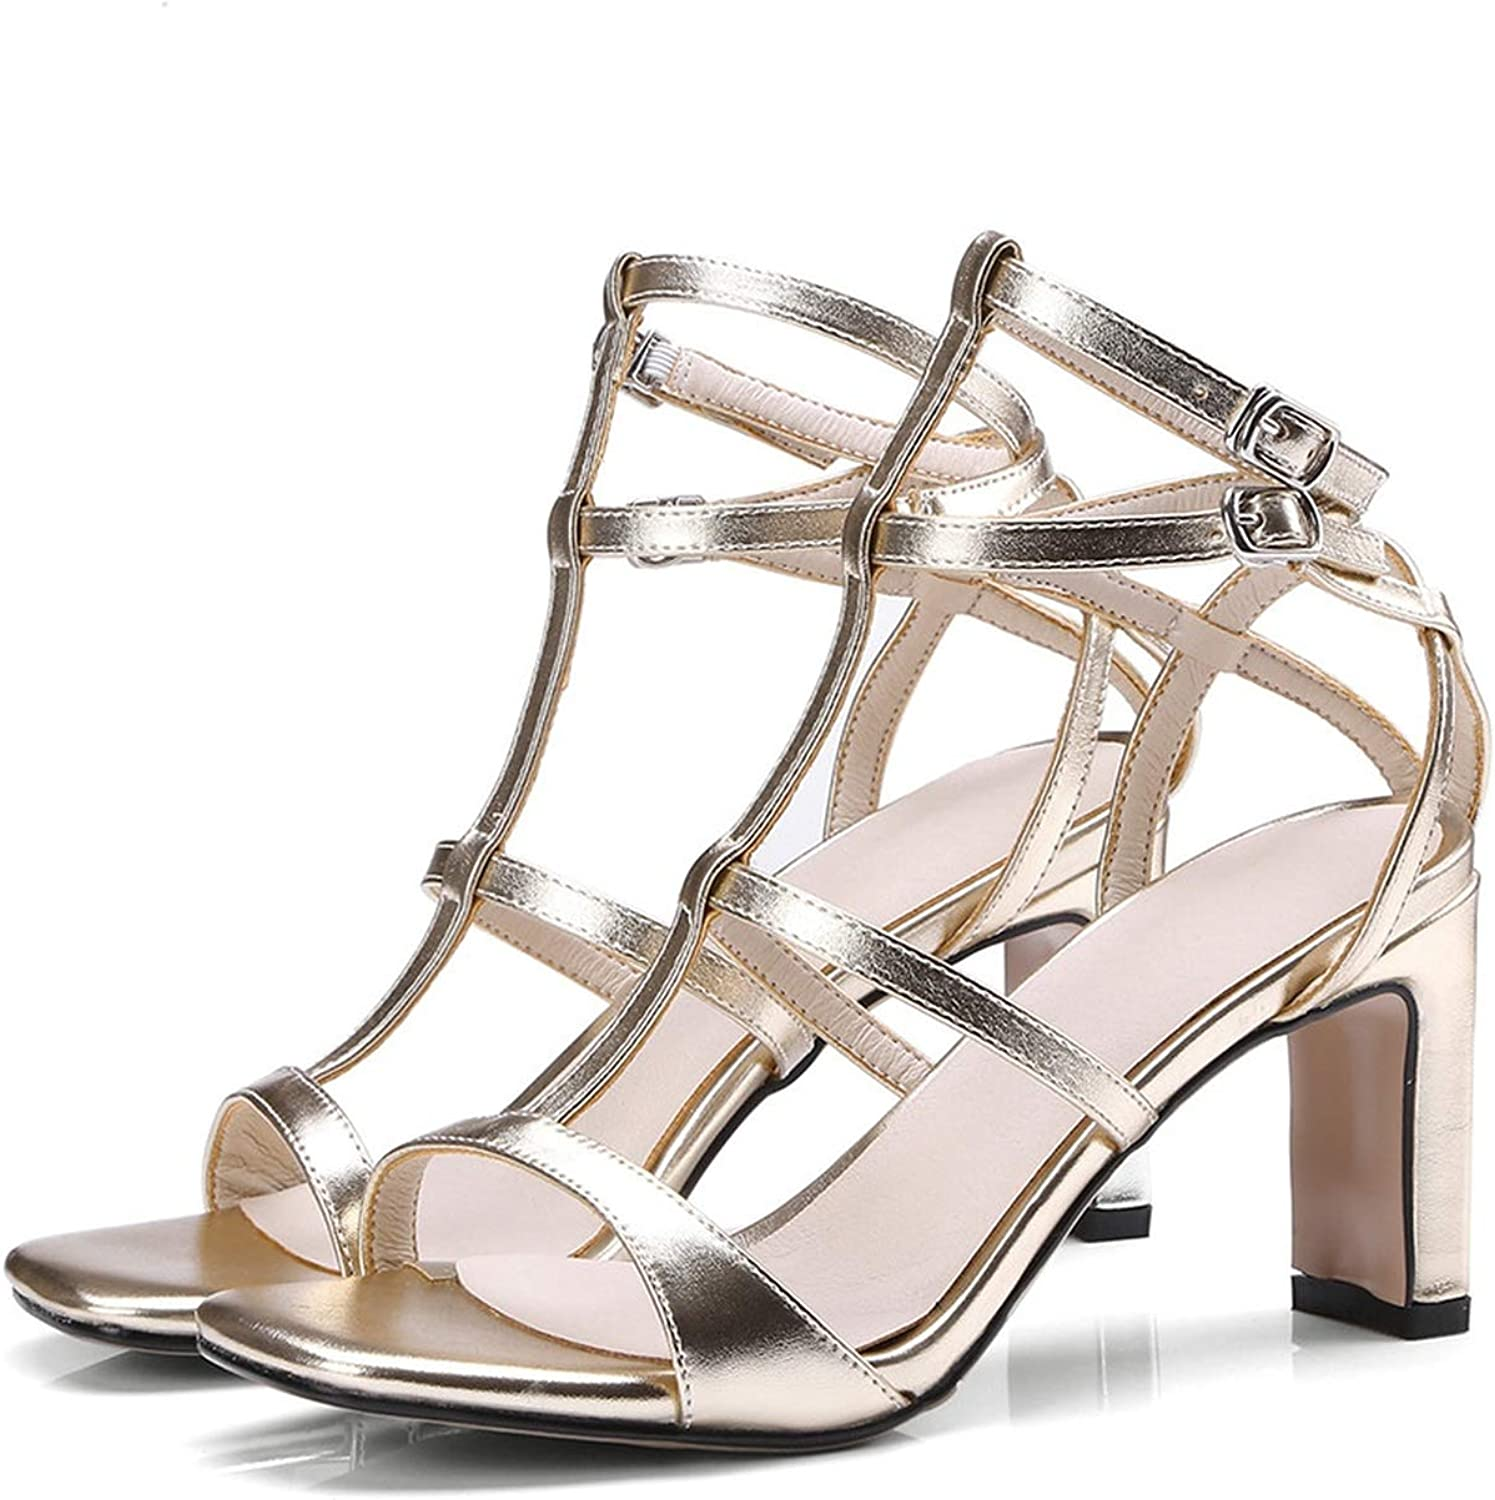 Summer shoes Woman 33-44 Buckle Elegant Prom Wedding shoes Thick Heel Sandals Women